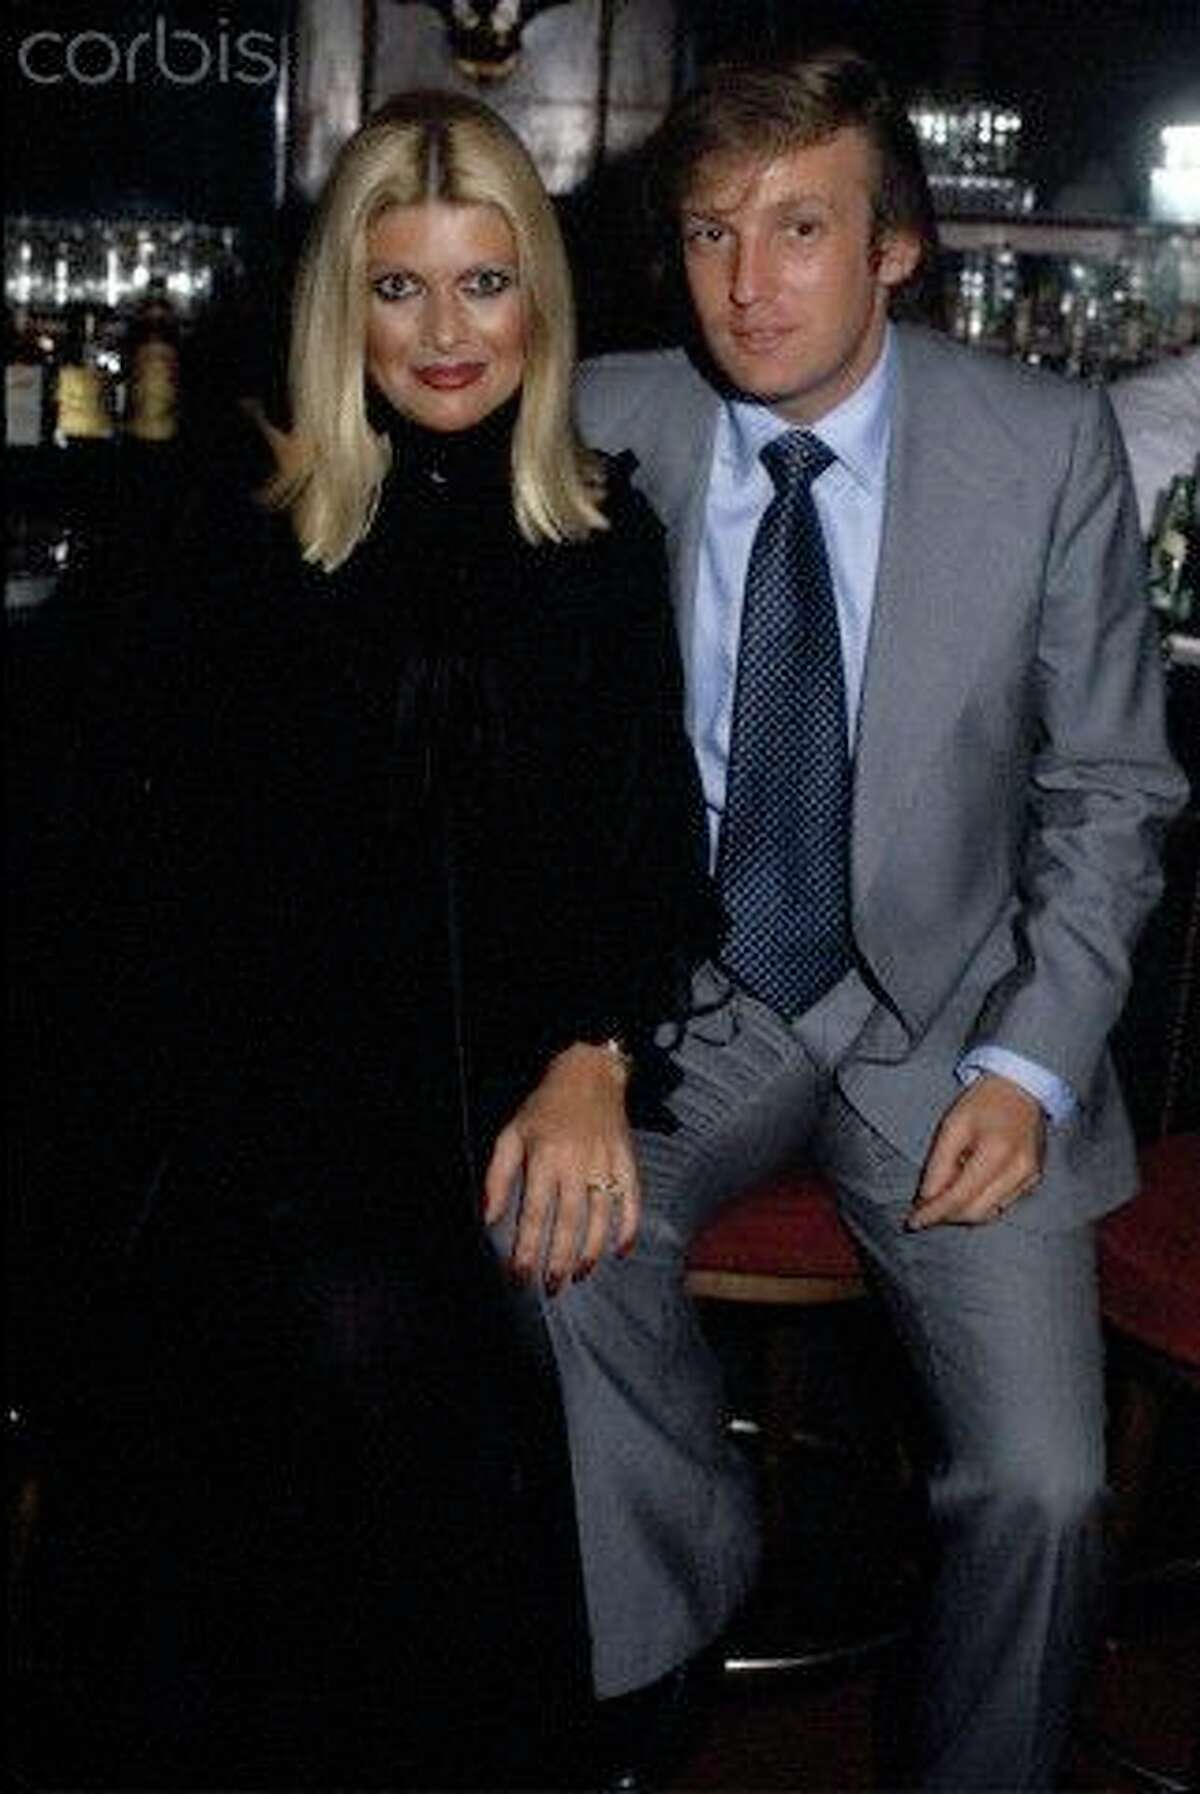 Click through this slideshow to see some of Donald Trump's cameos. This drama starred Ryan Phillipe, Salma Hayek and Mike Meyers, and told the tale of the infamous 1970's NYC nightclub, Studio 54. We couldn't find a still image of The Donald from it, so here's a real picture of him and Ivana from the actual swinging hotspot.